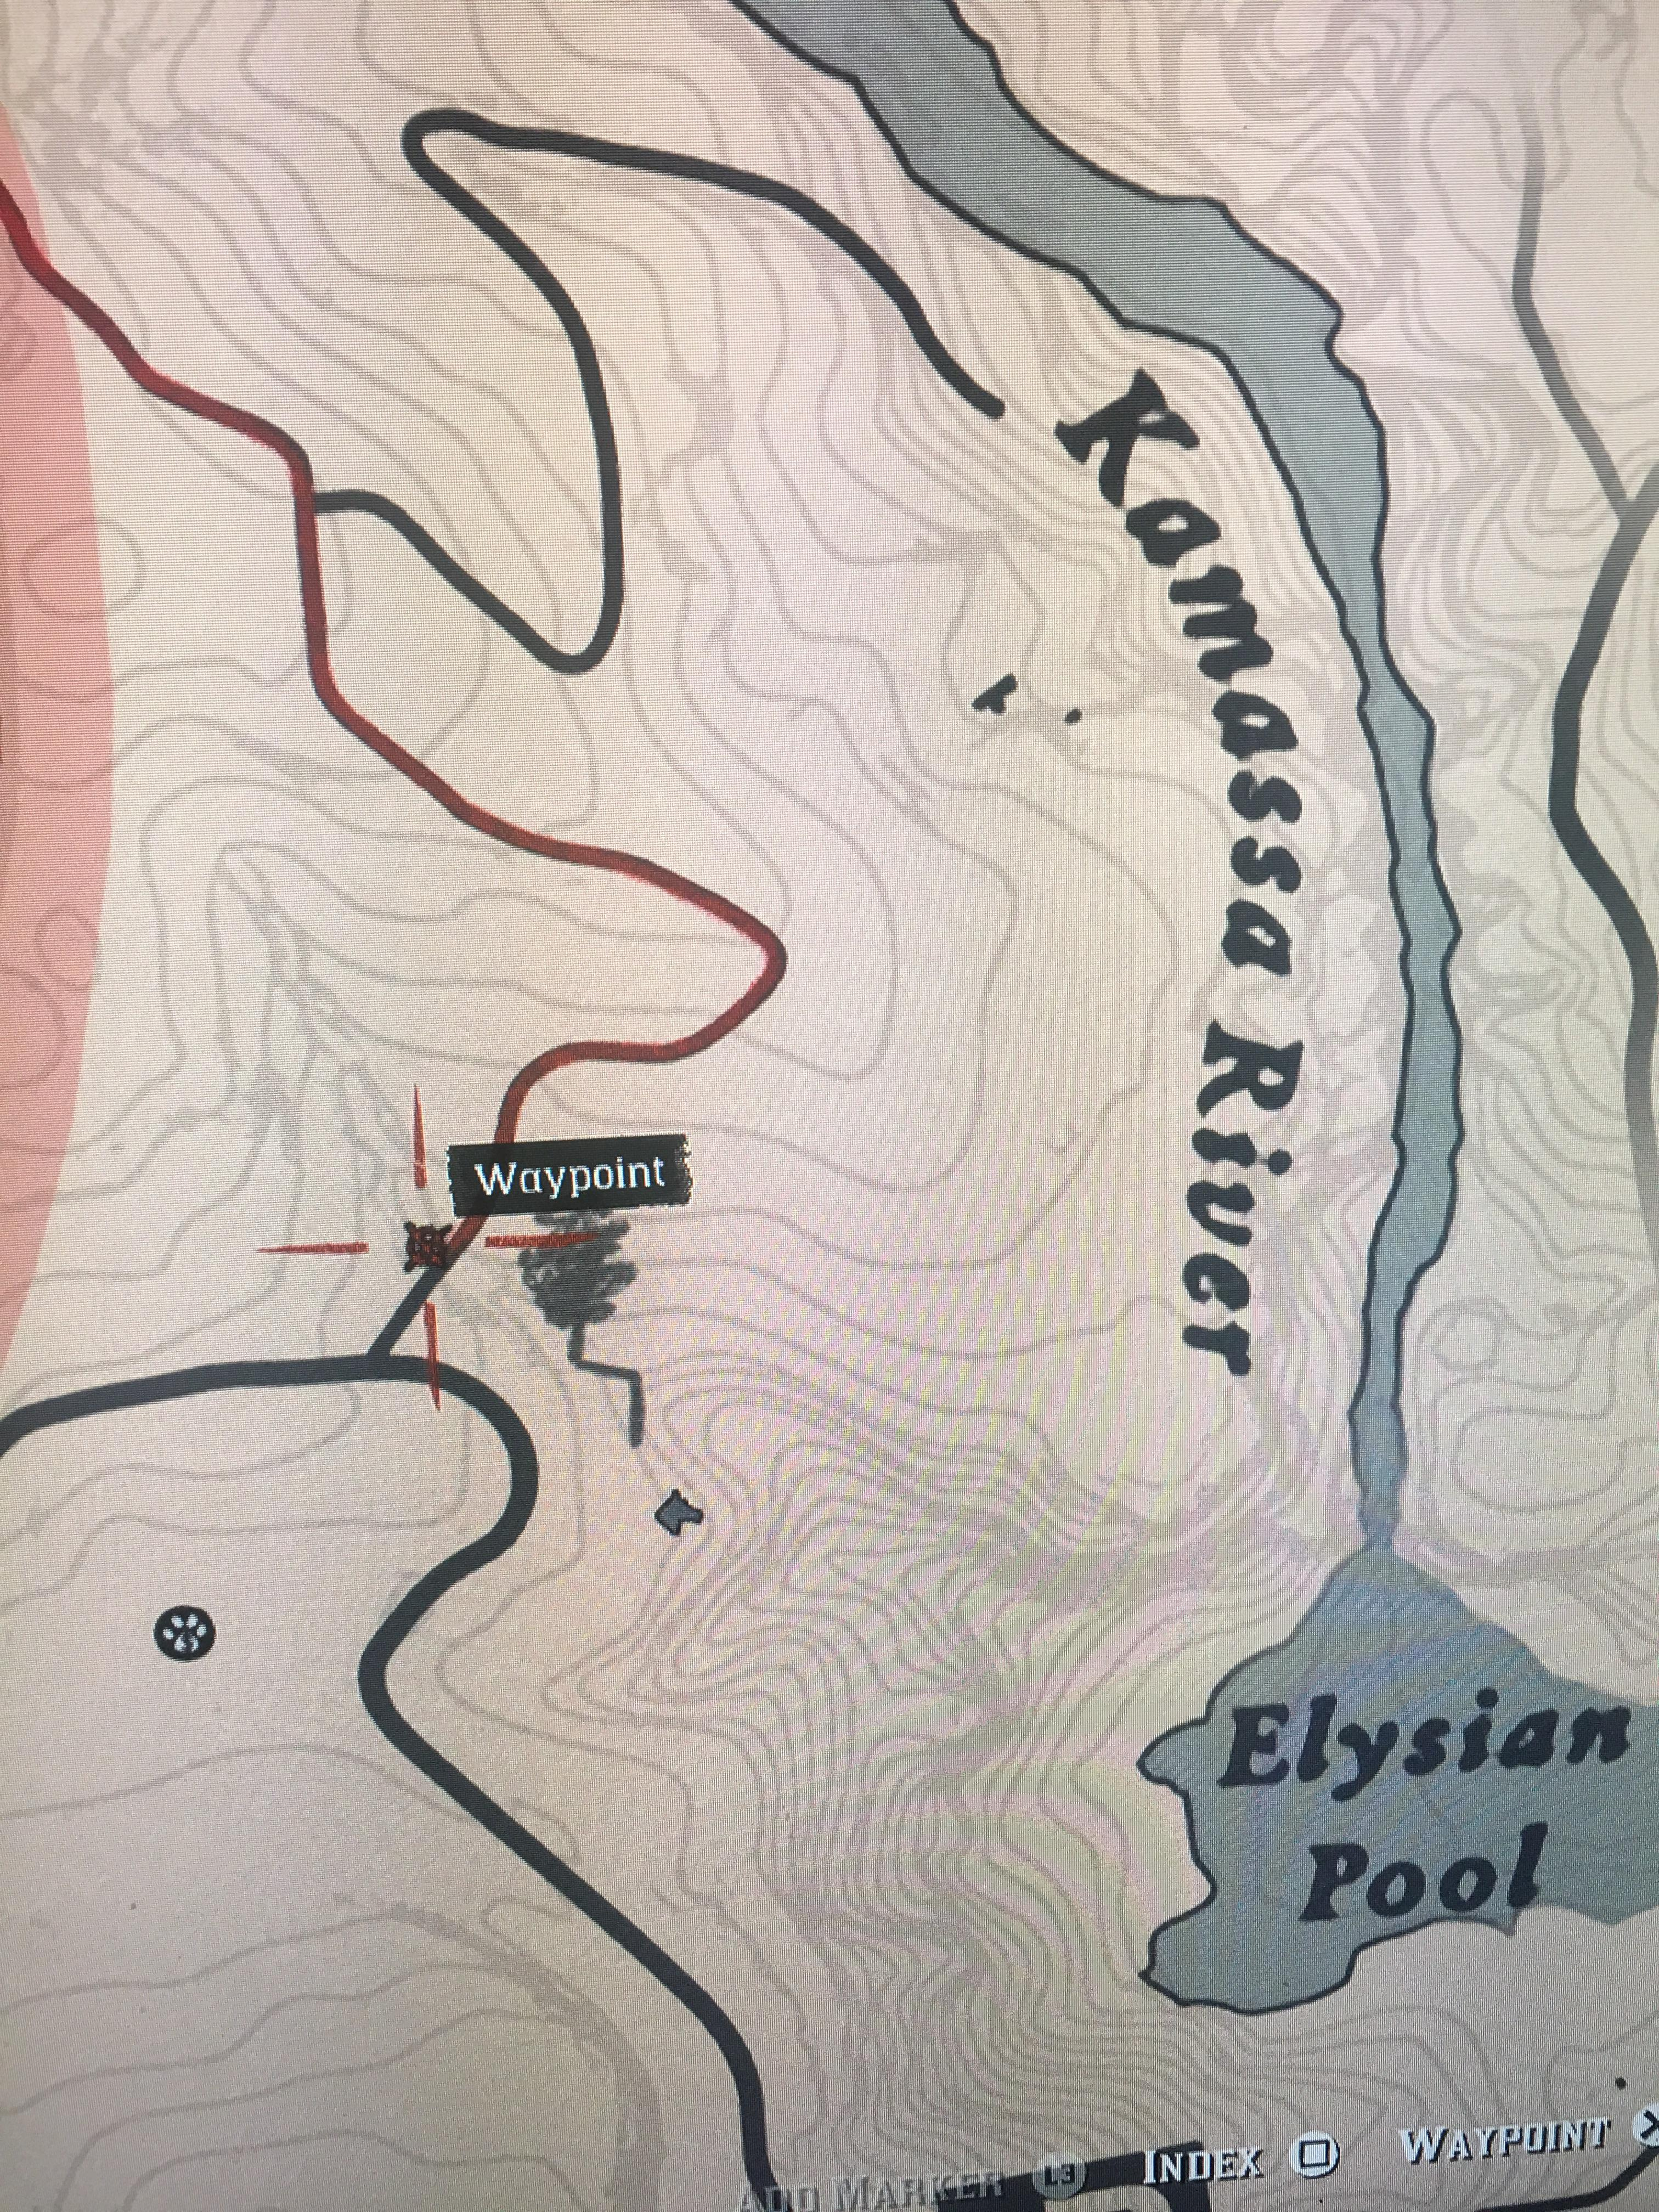 Rdr2 Trapper Locations Map : trapper, locations, Those, Looking, Robin,, Spawn/perch, Rails, Bridge., North, Hanover, Trapper.:, Reddeadredemption2